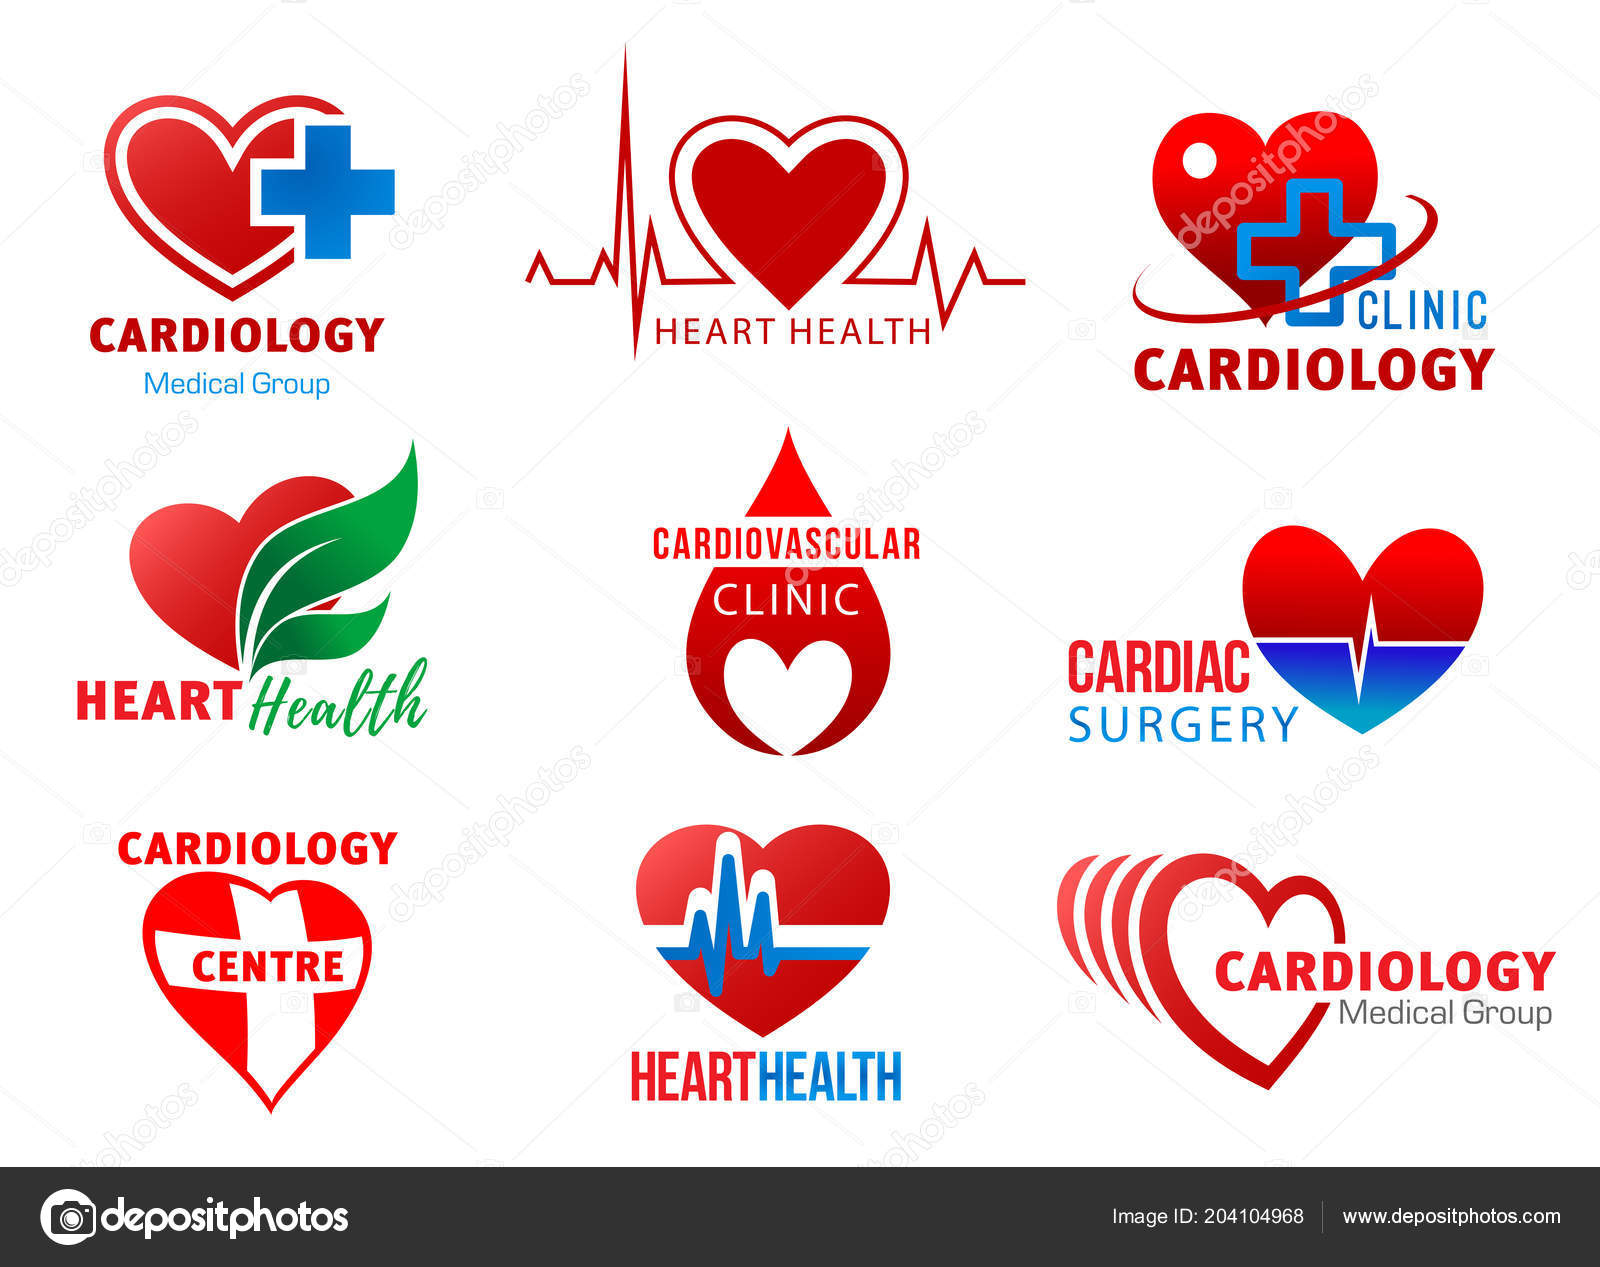 Open Heart Surgery Symbol Cardiology Cardiac Surgery Heart Health Symbols Stock Vector C Seamartini 204104968